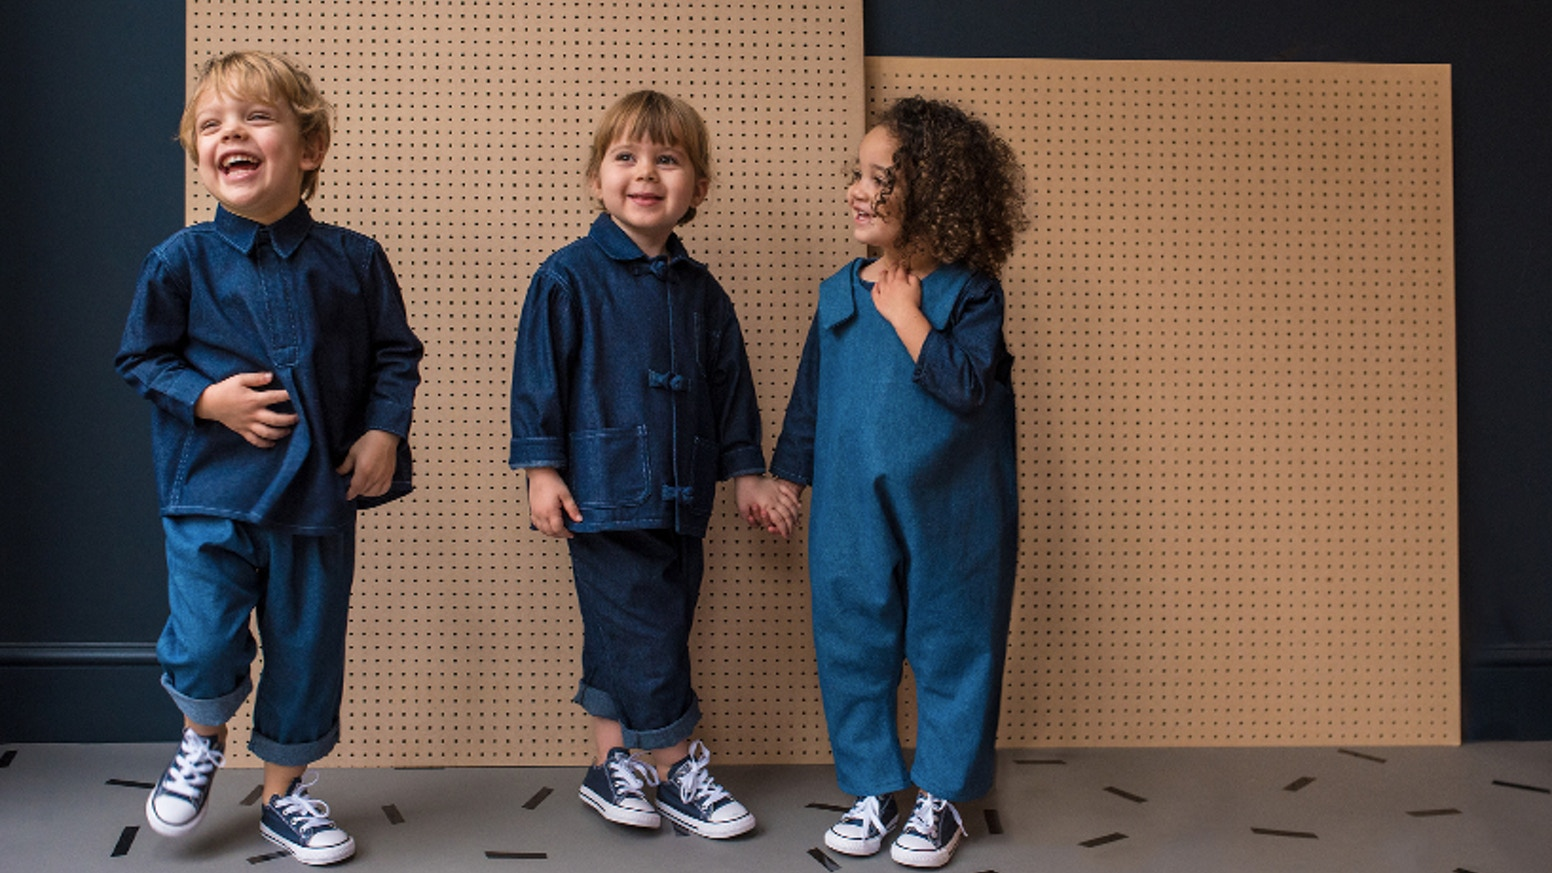 This new clothing brand for children aged two to six needs funding to help put the AW17 and future collections into production